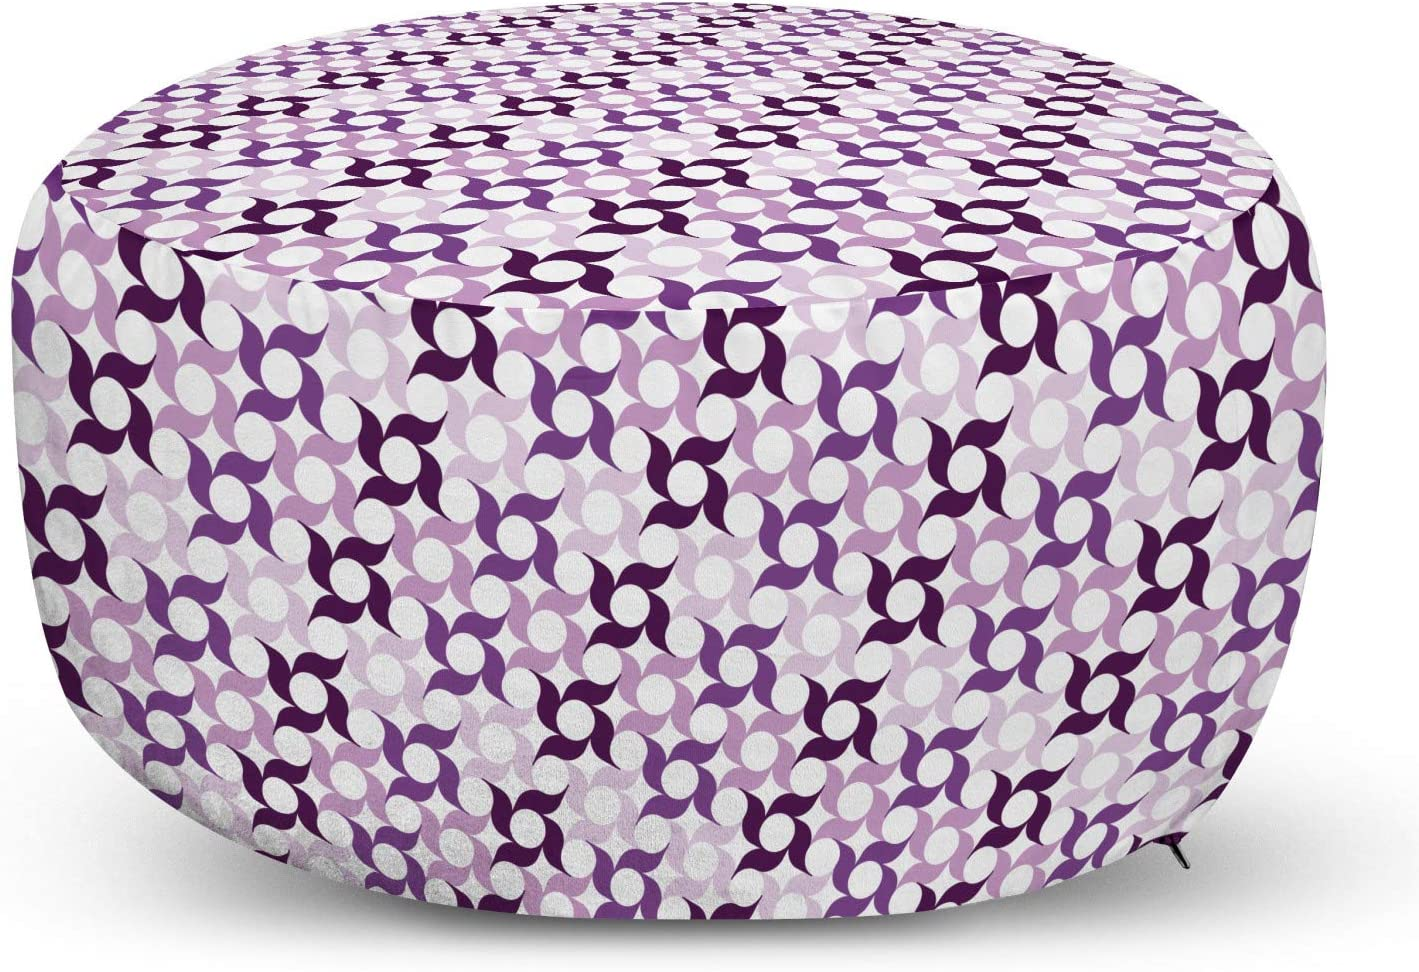 Max 41% OFF Ambesonne Pinwheel Pouf Max 80% OFF Cover with Flor Zipper Graphic Swirling